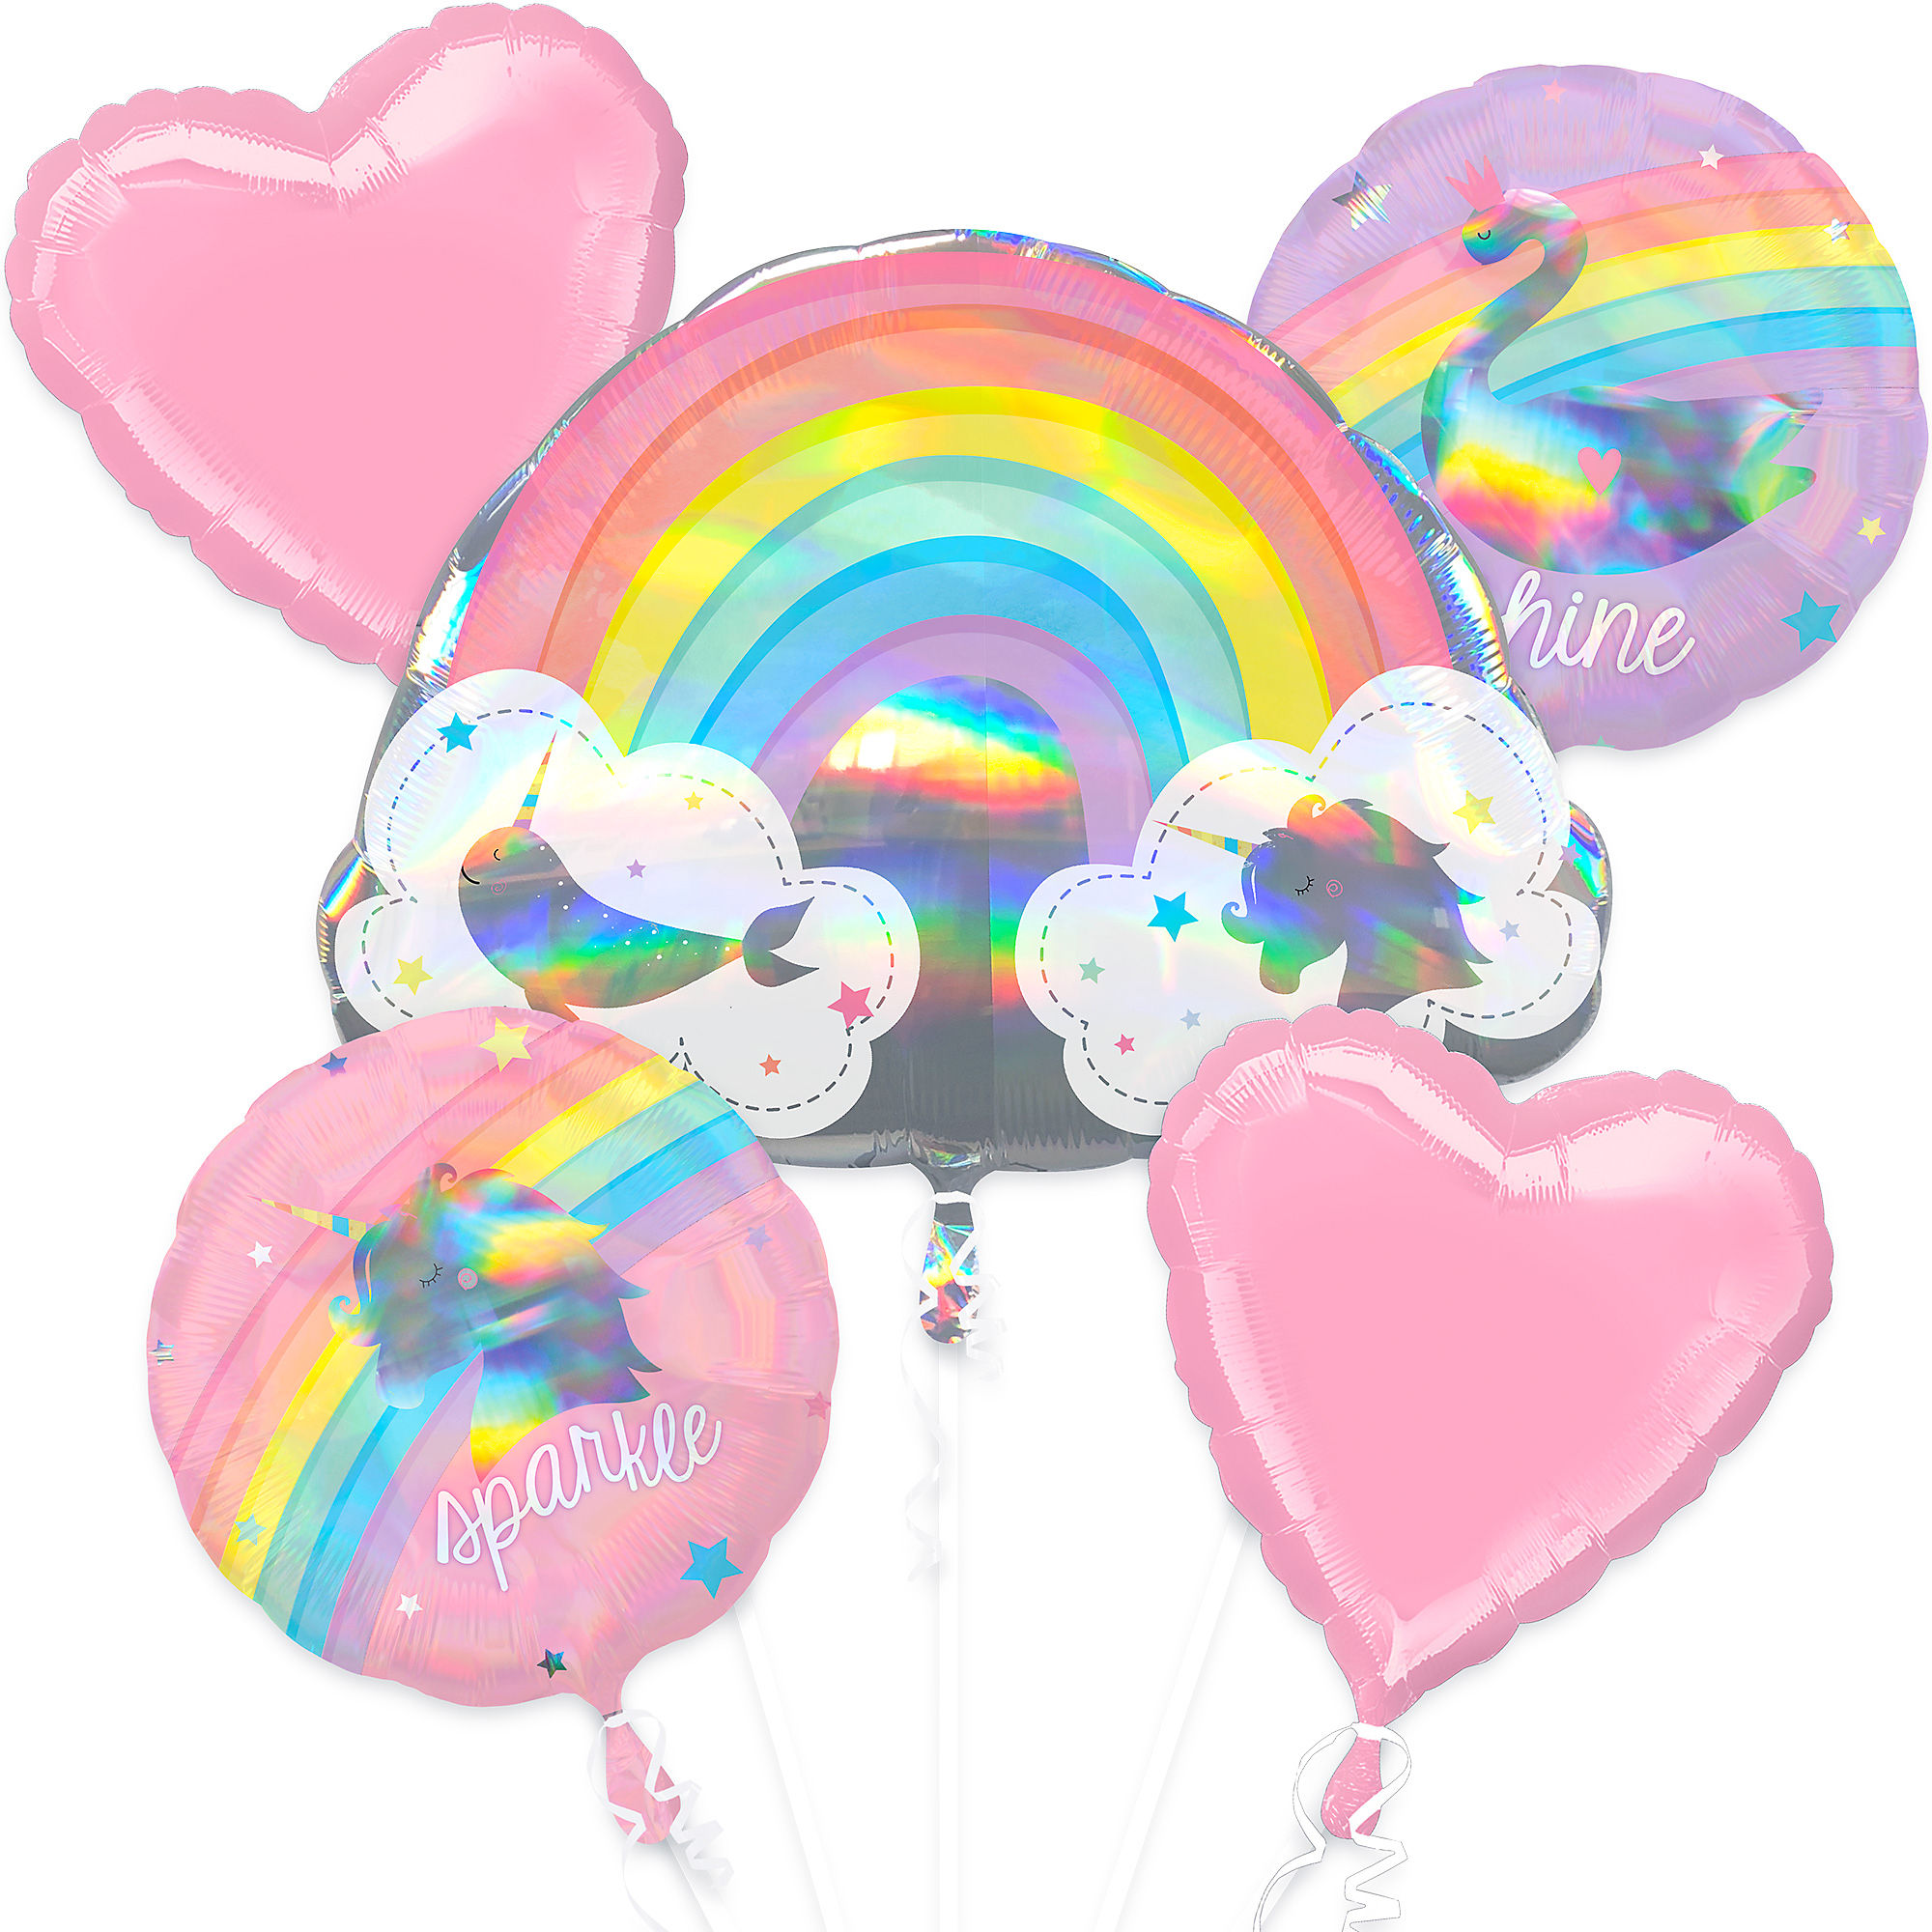 Party Balloons Party Decorations Birthday Party Decorations 36 Jumbo Balloon Rainbow Balloon